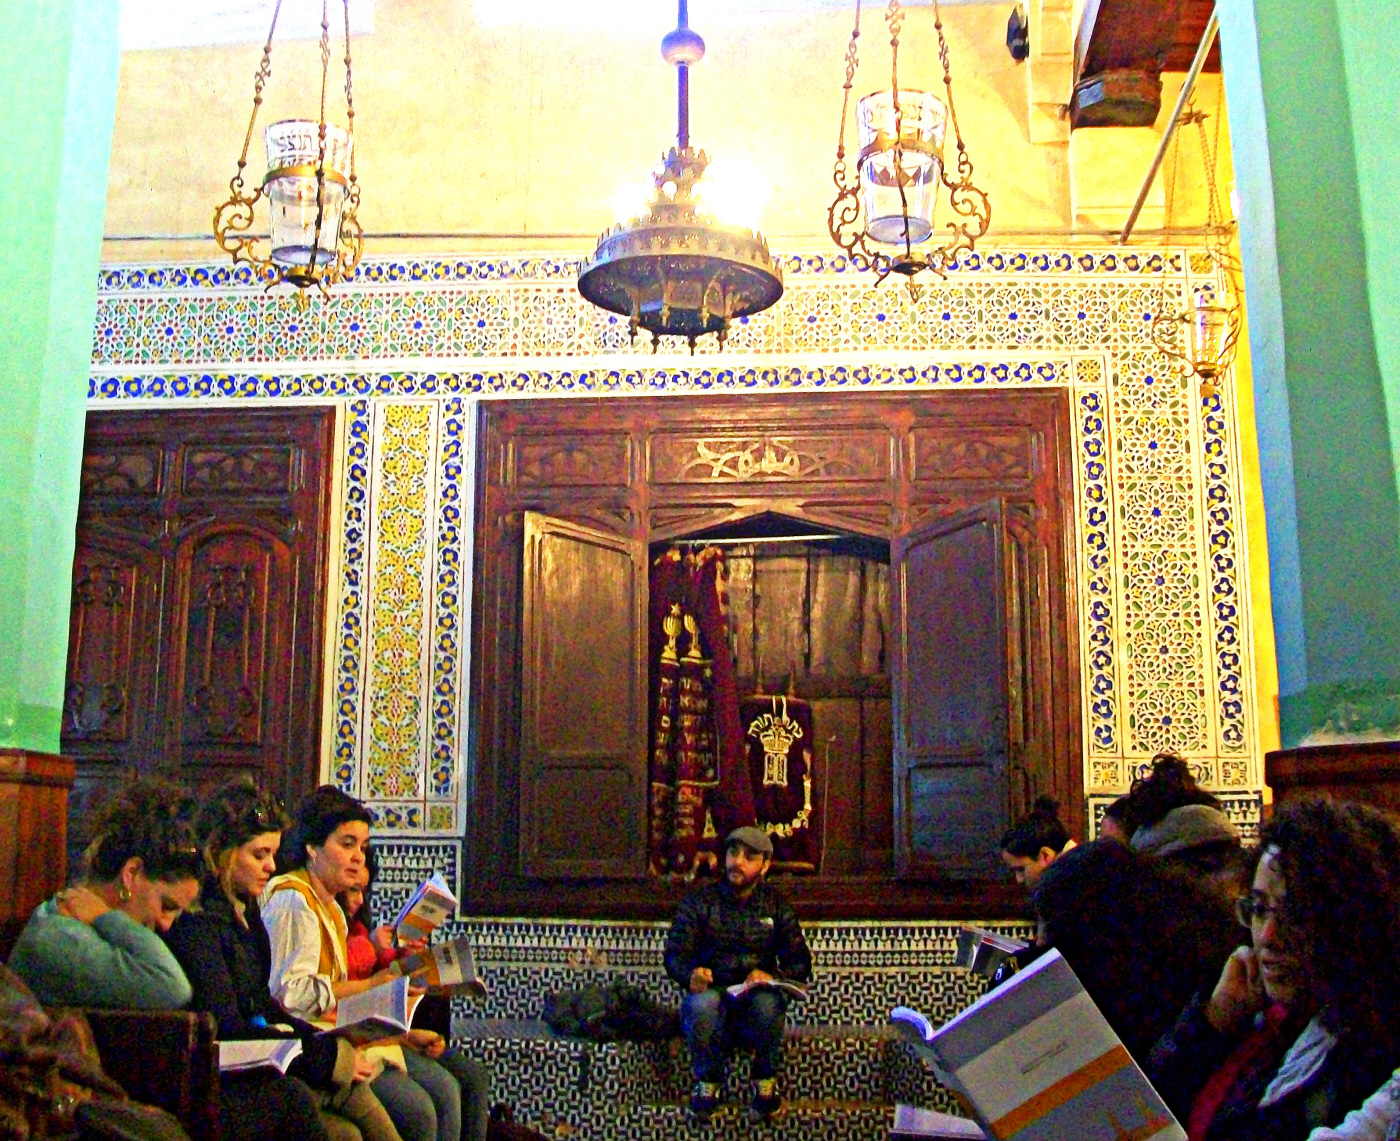 Jewish Tourists Inspired by the Sacredness of the Ibn Danan Synogogue (17th Cen.) Fes